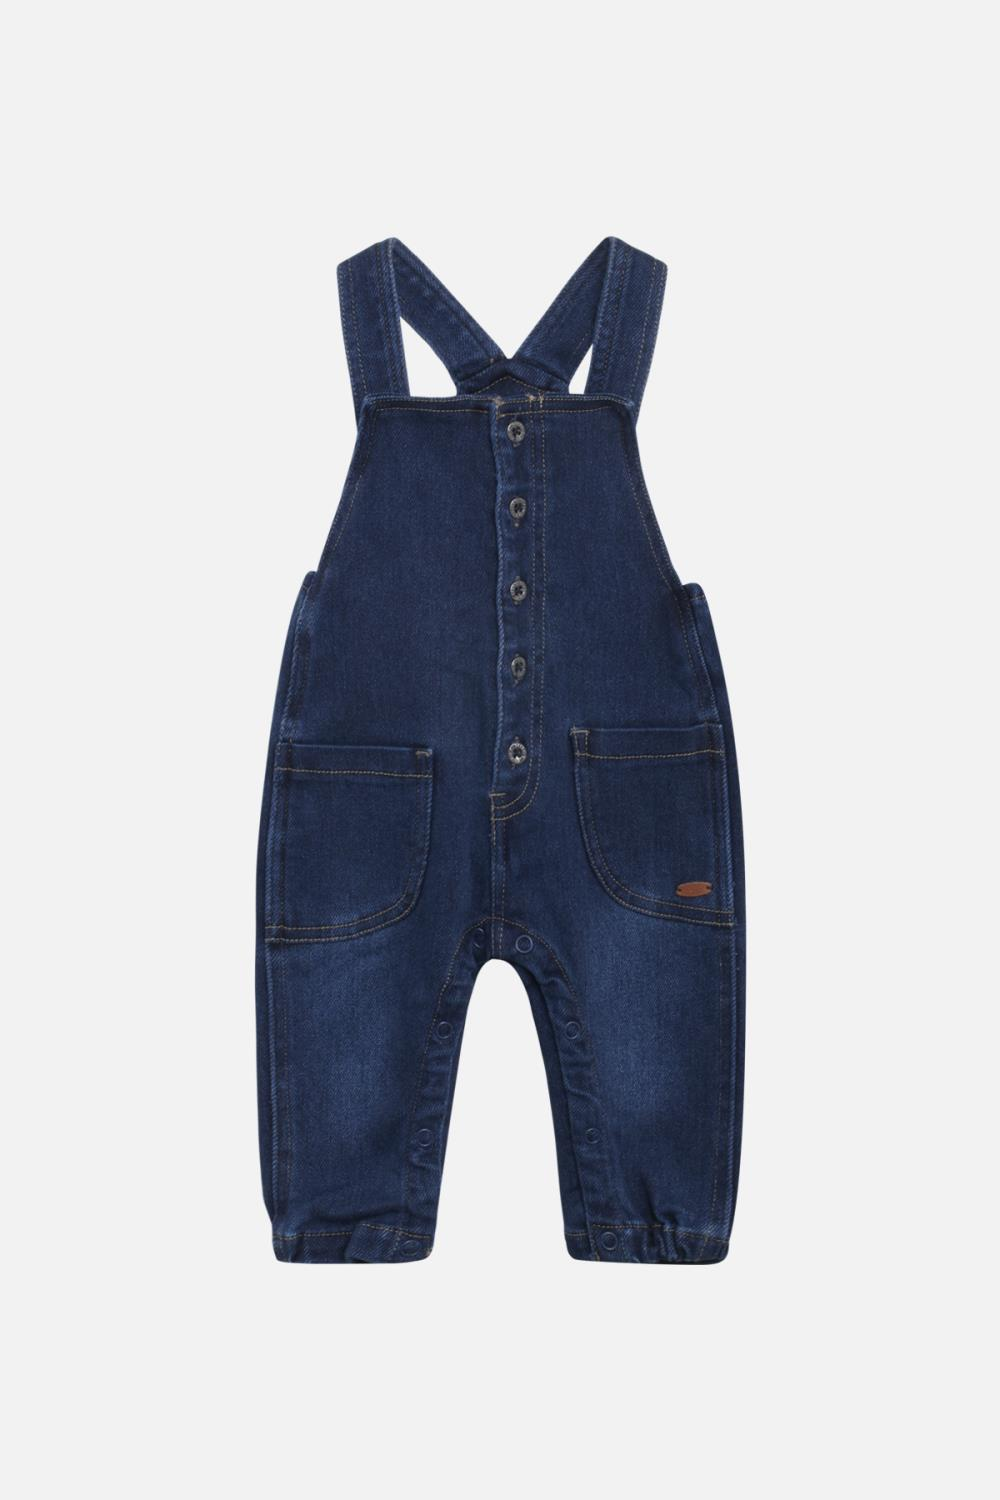 Hust and Claire - Overall Mads, denim blue